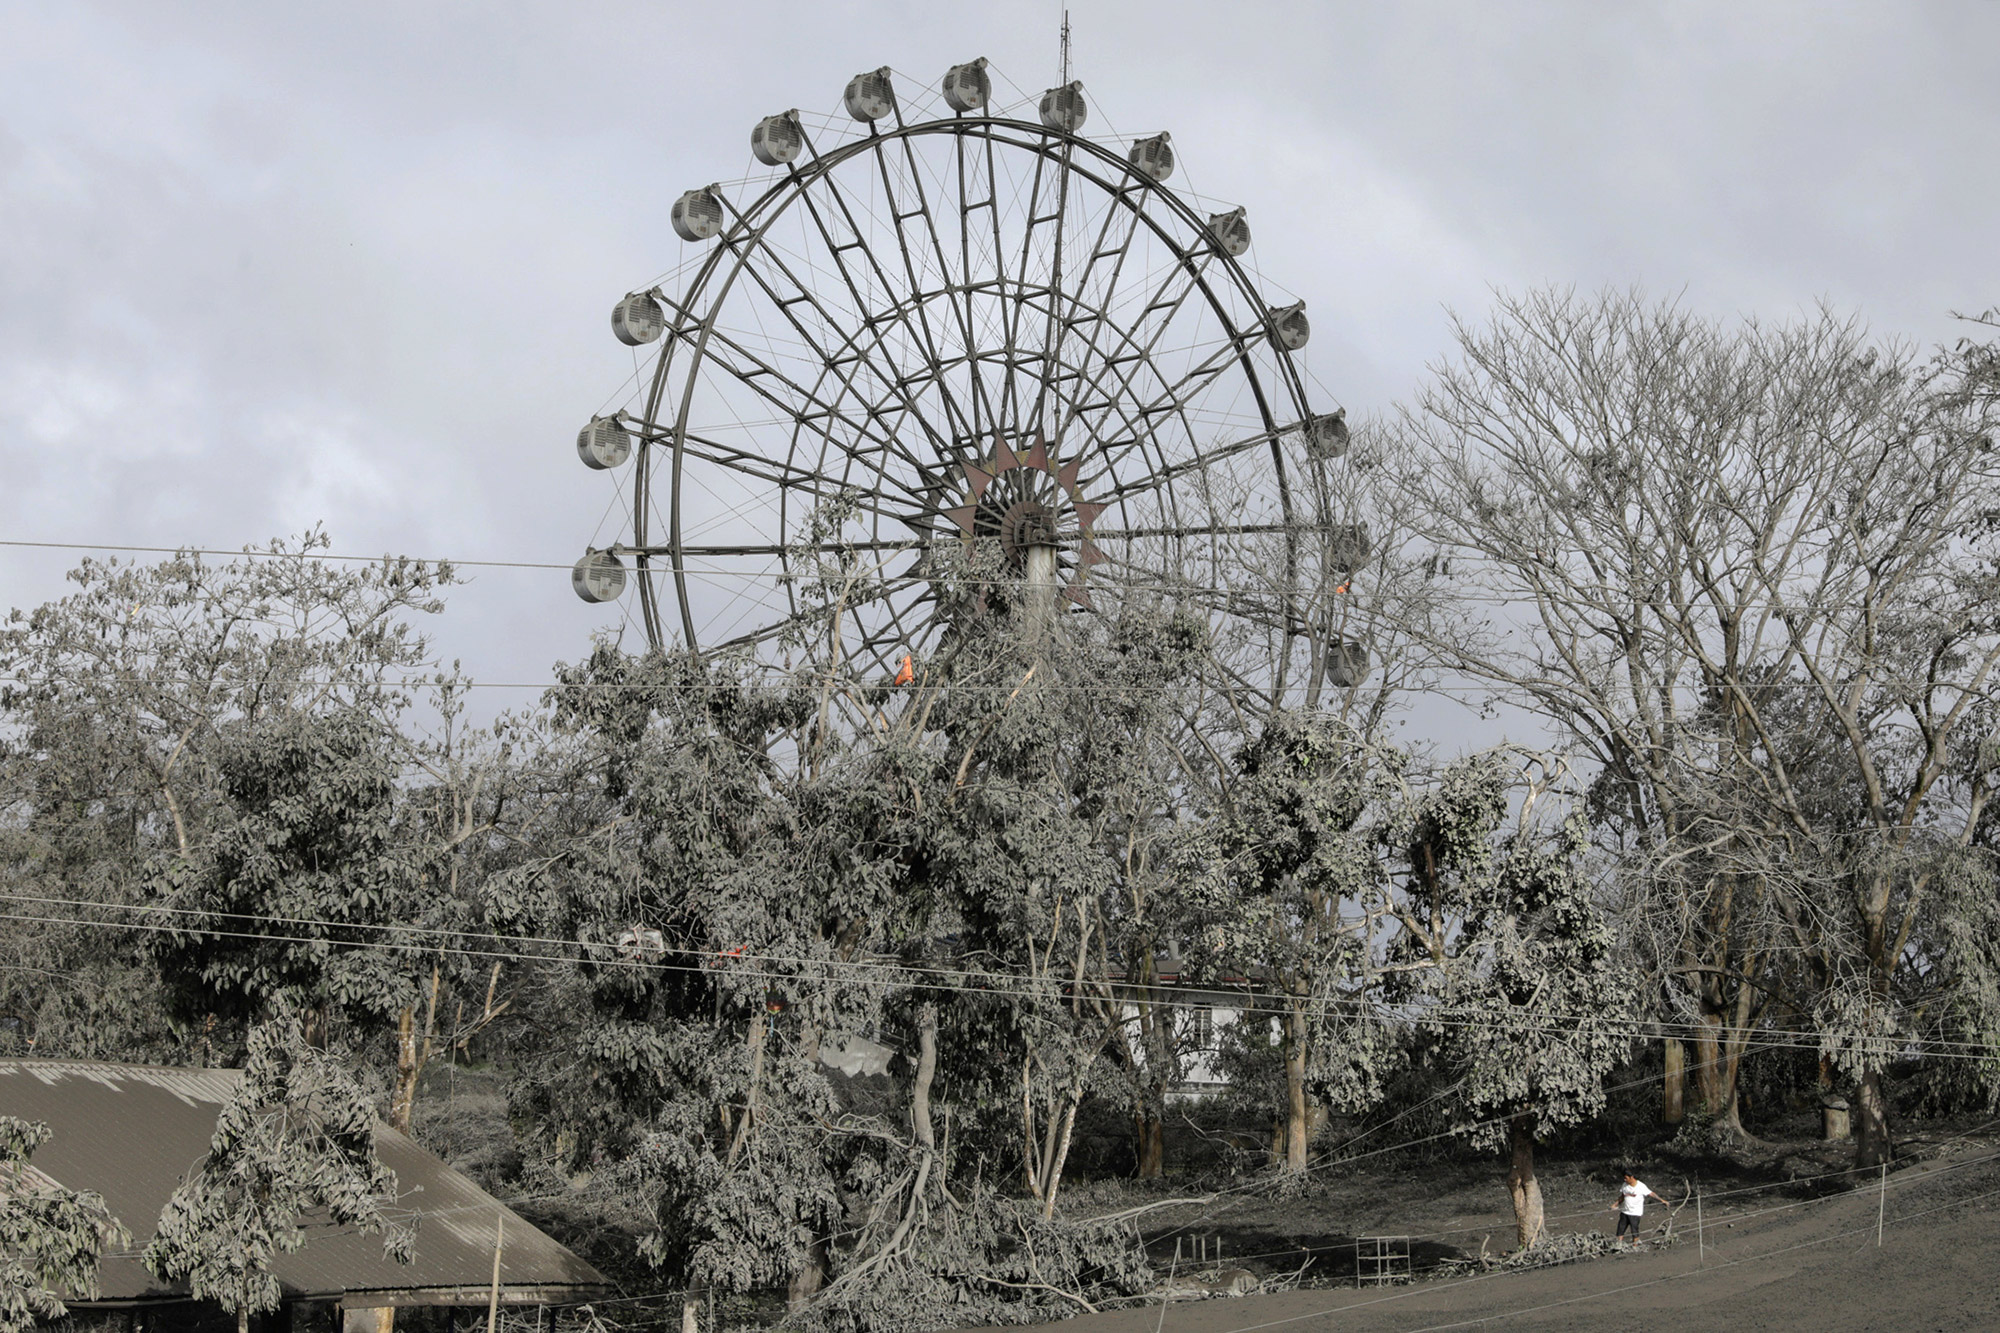 A ferris wheel is covered with volcanic ash in a park in Tagaytay City, Philippines, January 14, 2020. REUTERS/Eloisa Lopez